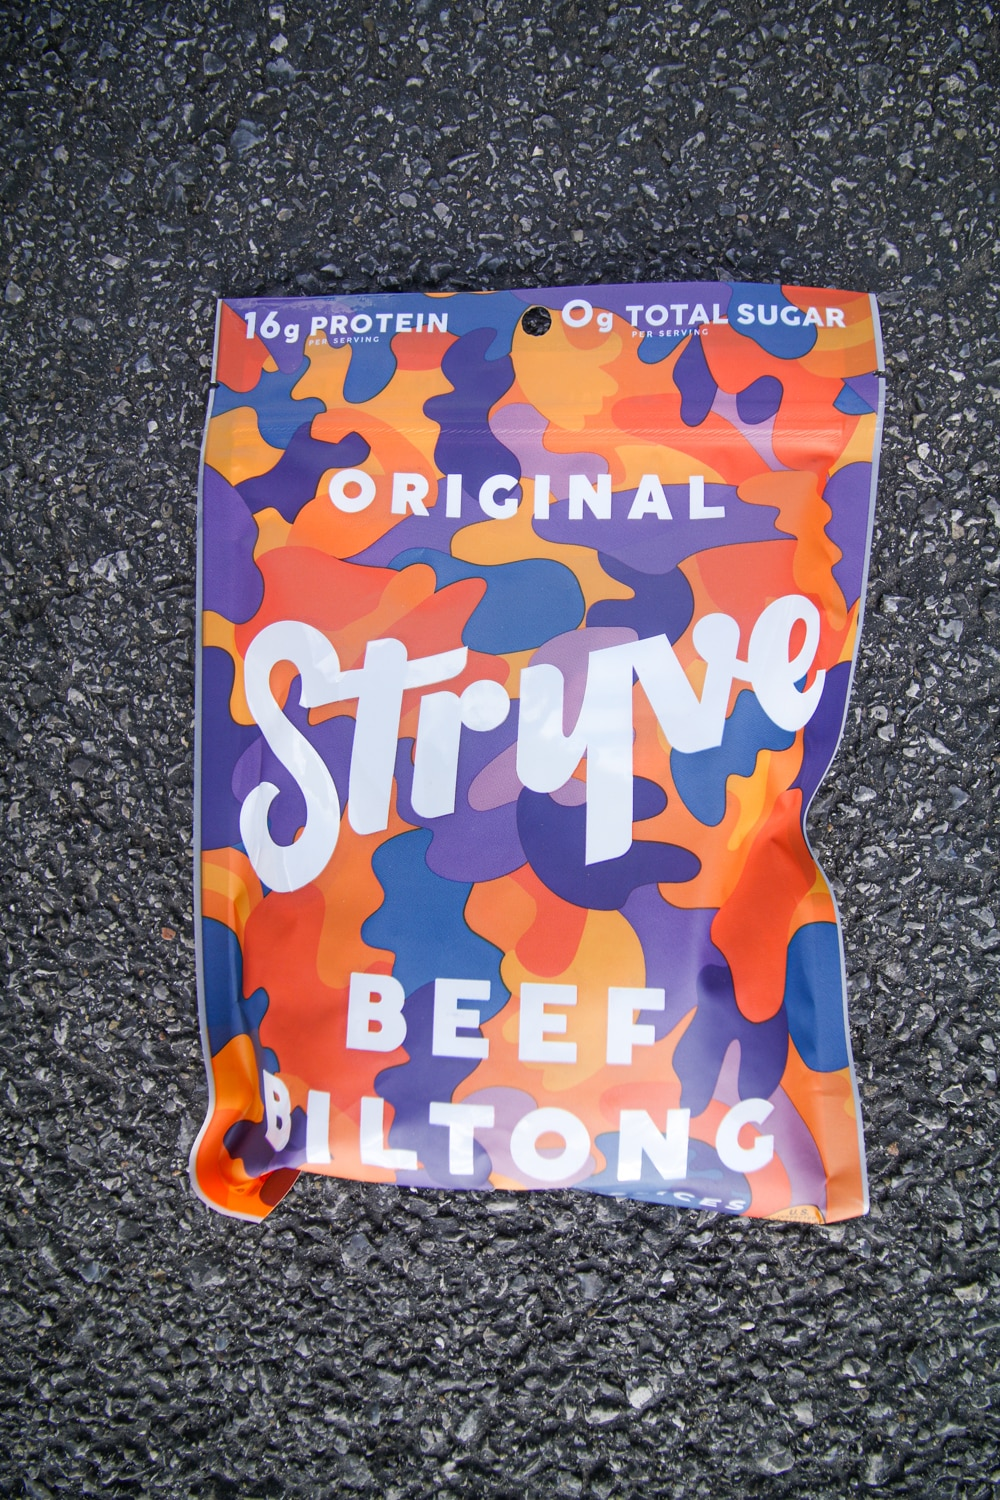 A package of biltong.